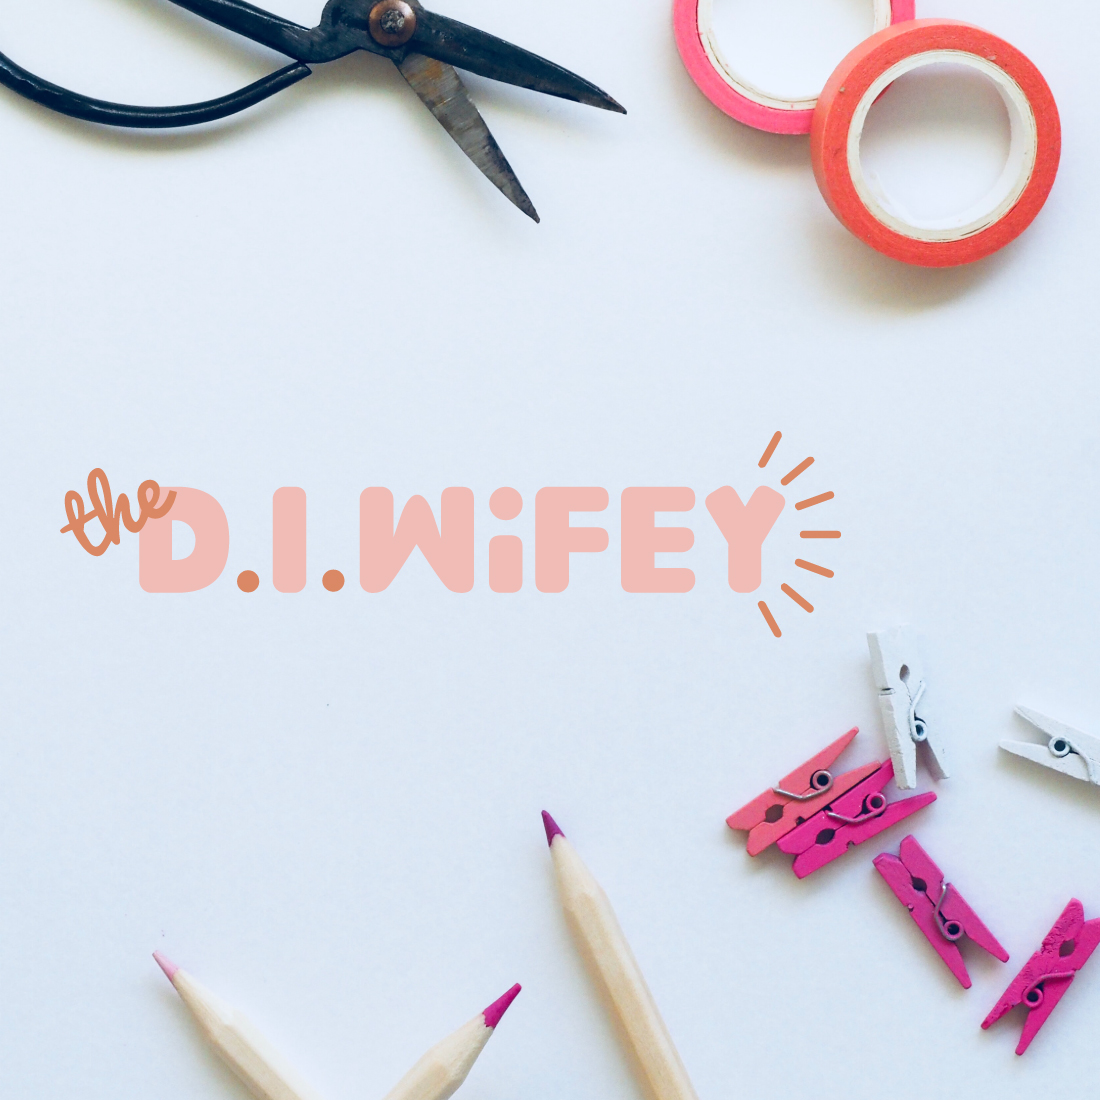 craft pieces- diwifey-logo design